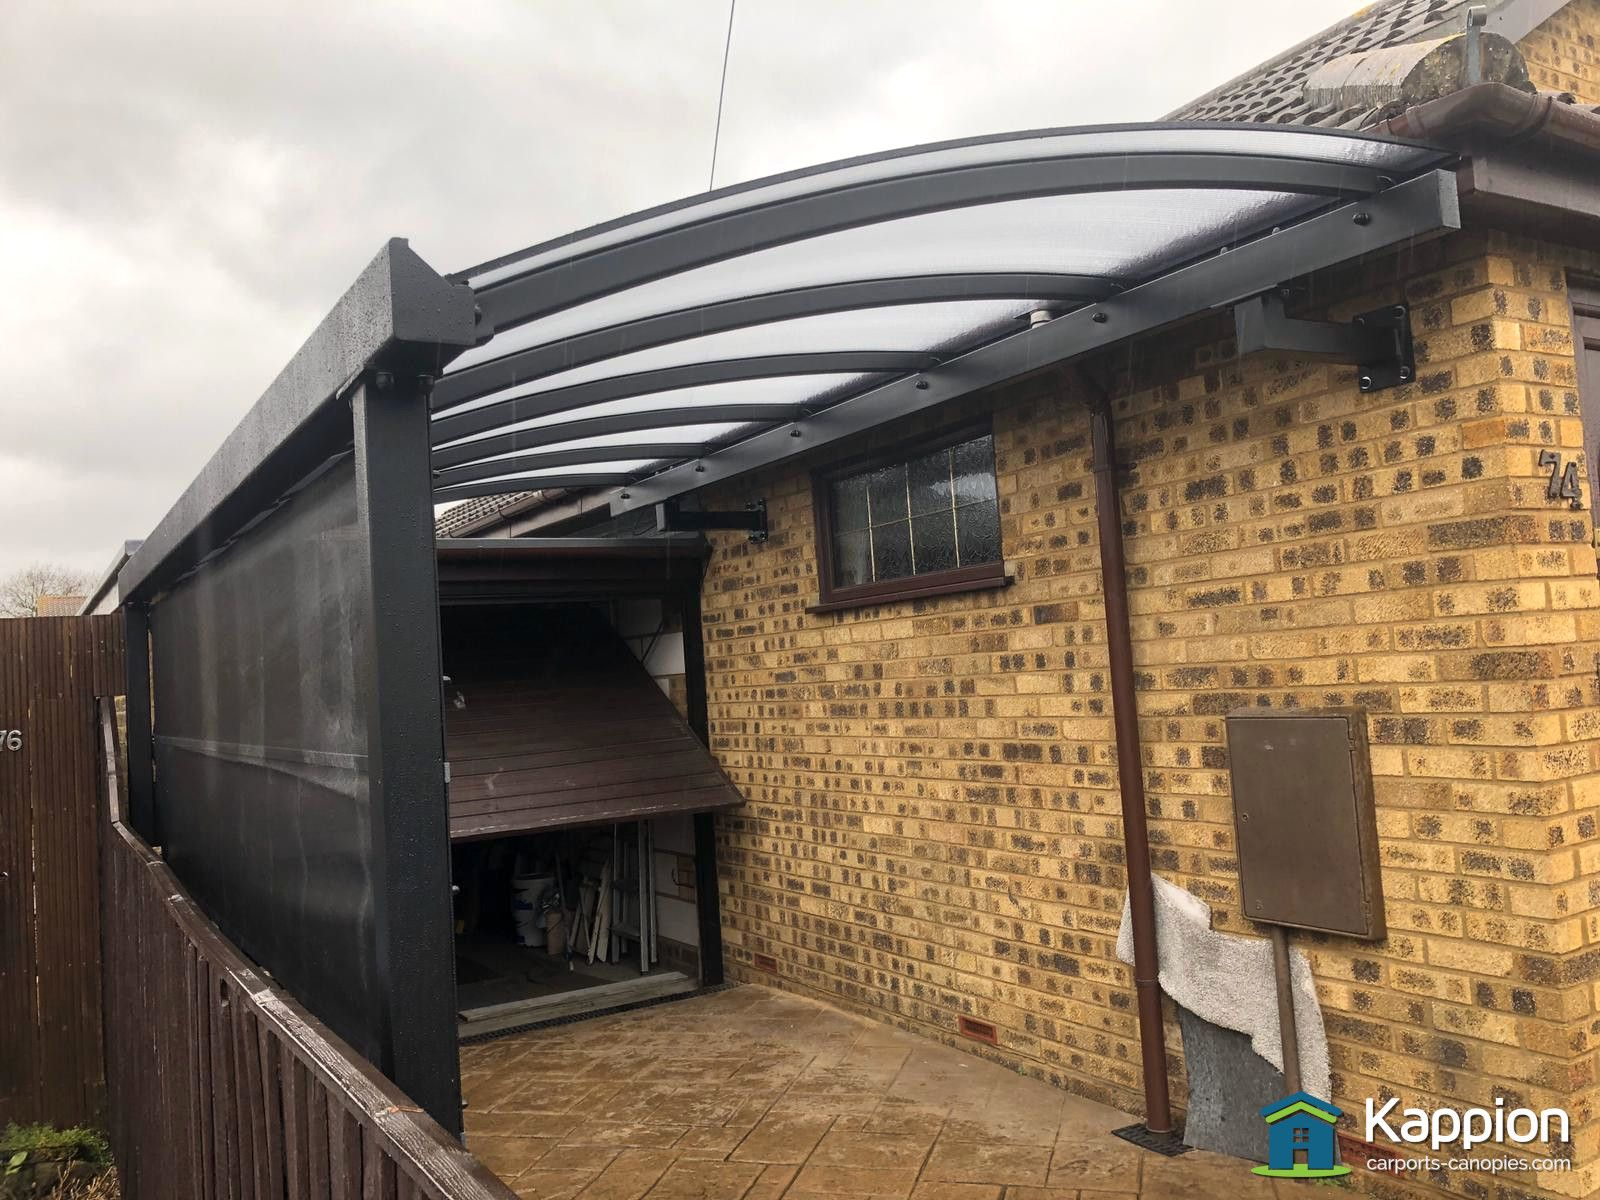 Quarter Curved Carport installed in Essex By Kappion